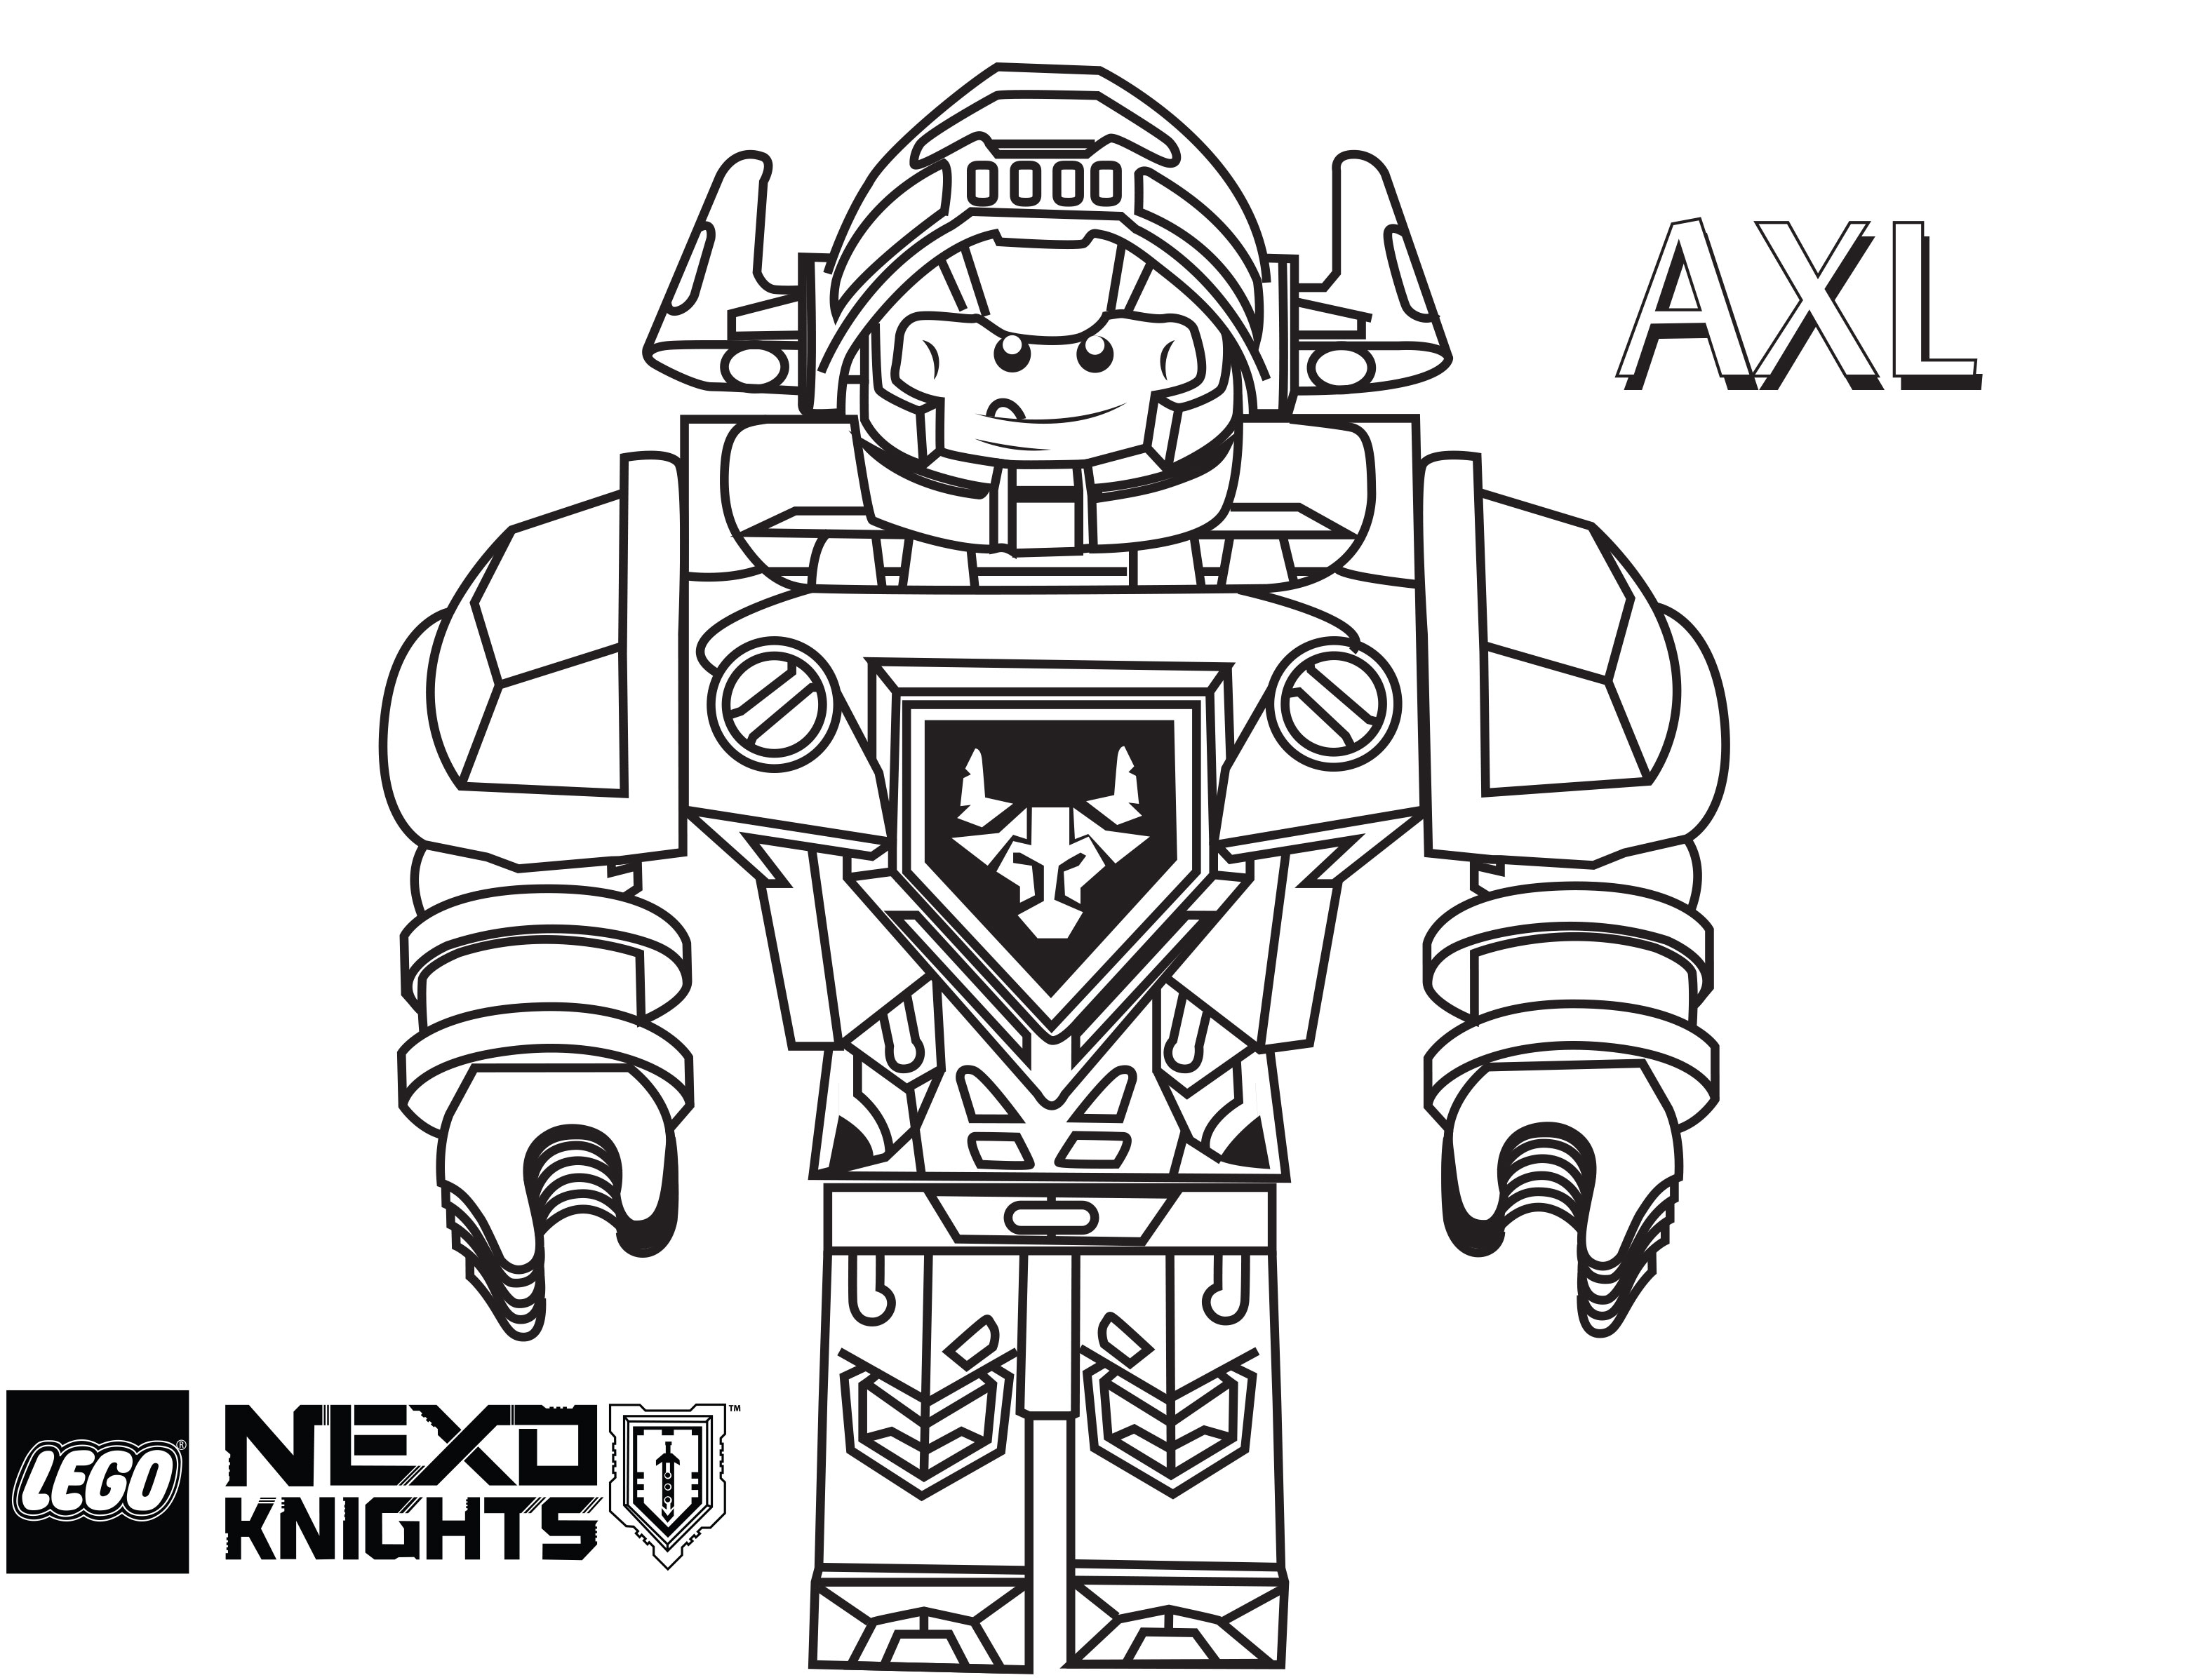 Lego Nexo Knights Coloring Pages : Free coloring pages of lego knights